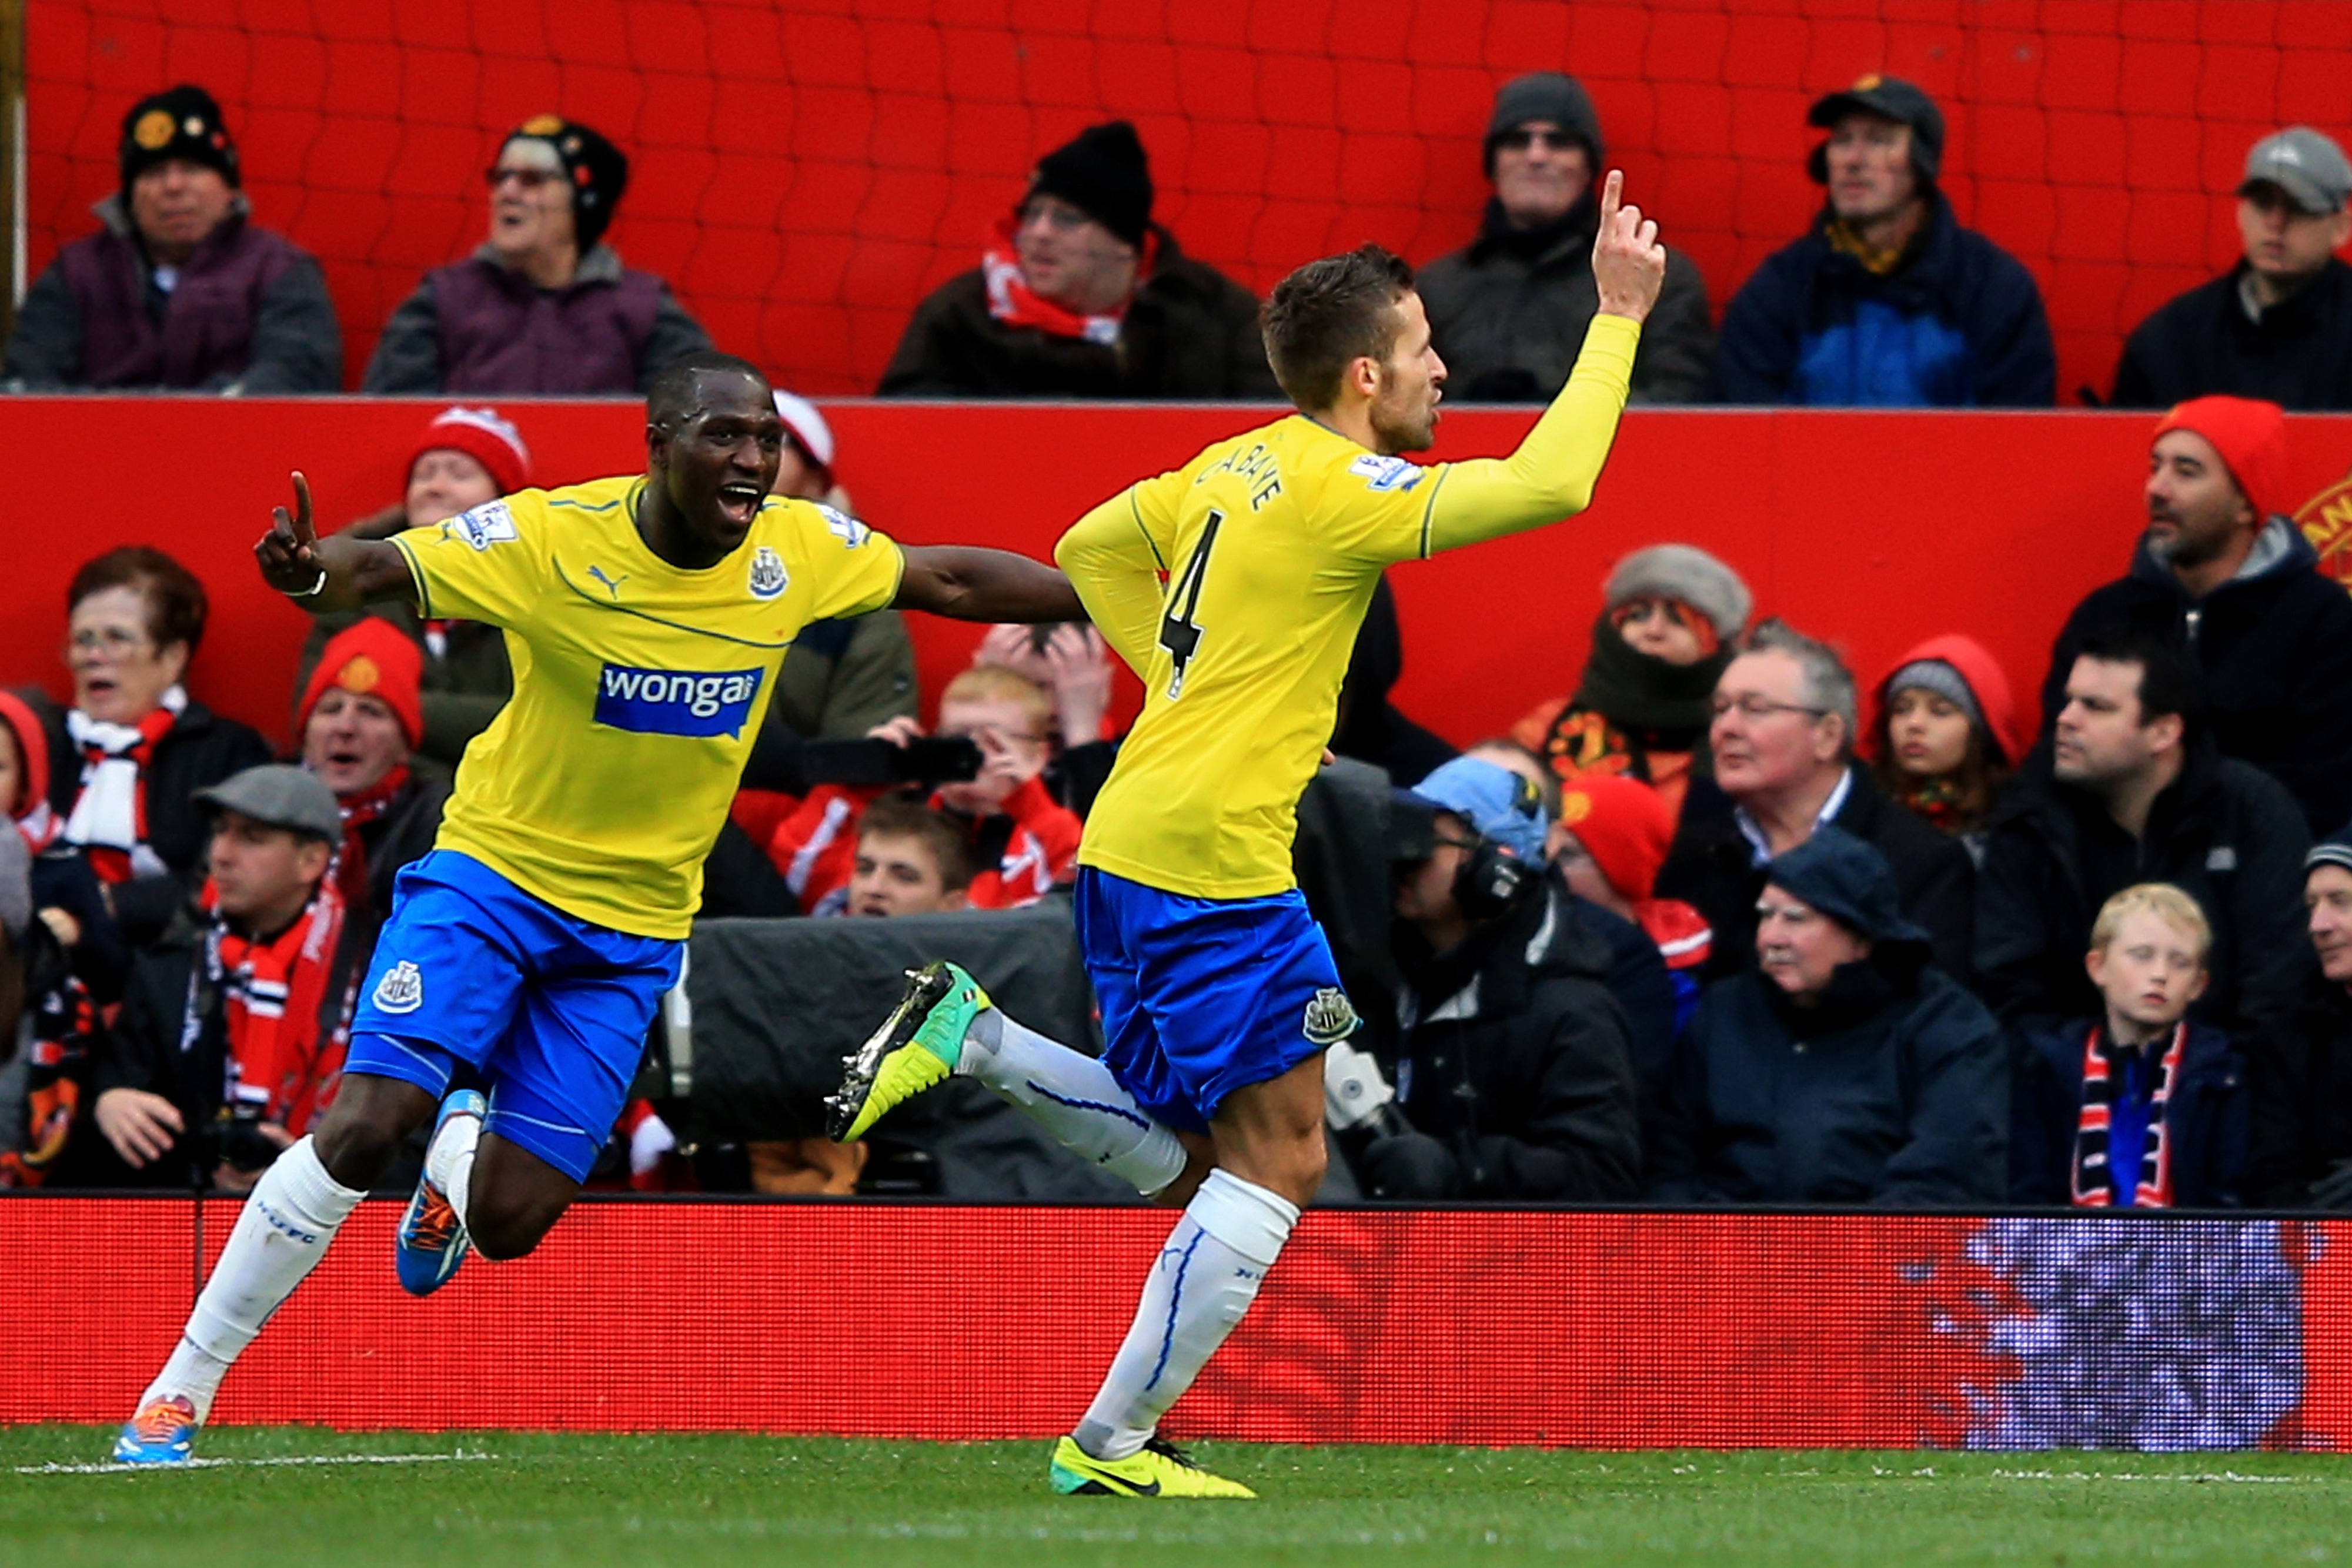 Manchester United vs. Newcastle United: Final score 0-1; Magpies come away with surprise win